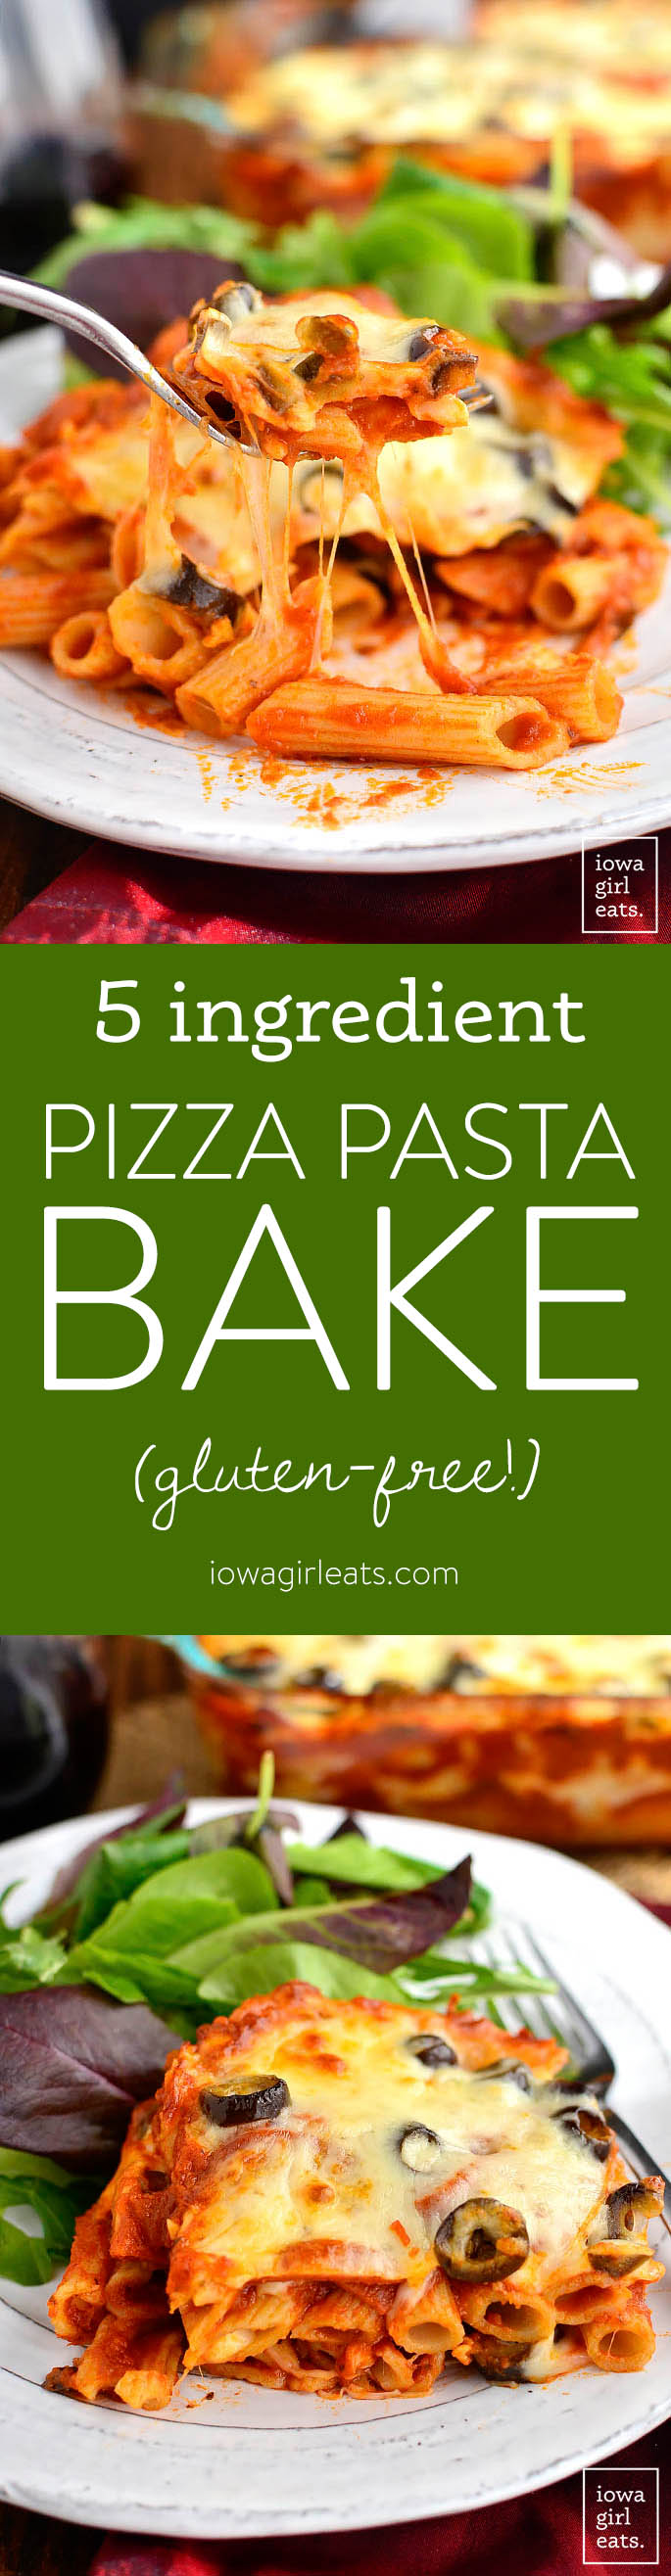 5-Ingredient Pizza Pasta Bake is a cheesy and decadent gluten-free casserole recipe that will let you get your pizza fix without calling for delivery! | iowagirleats.com